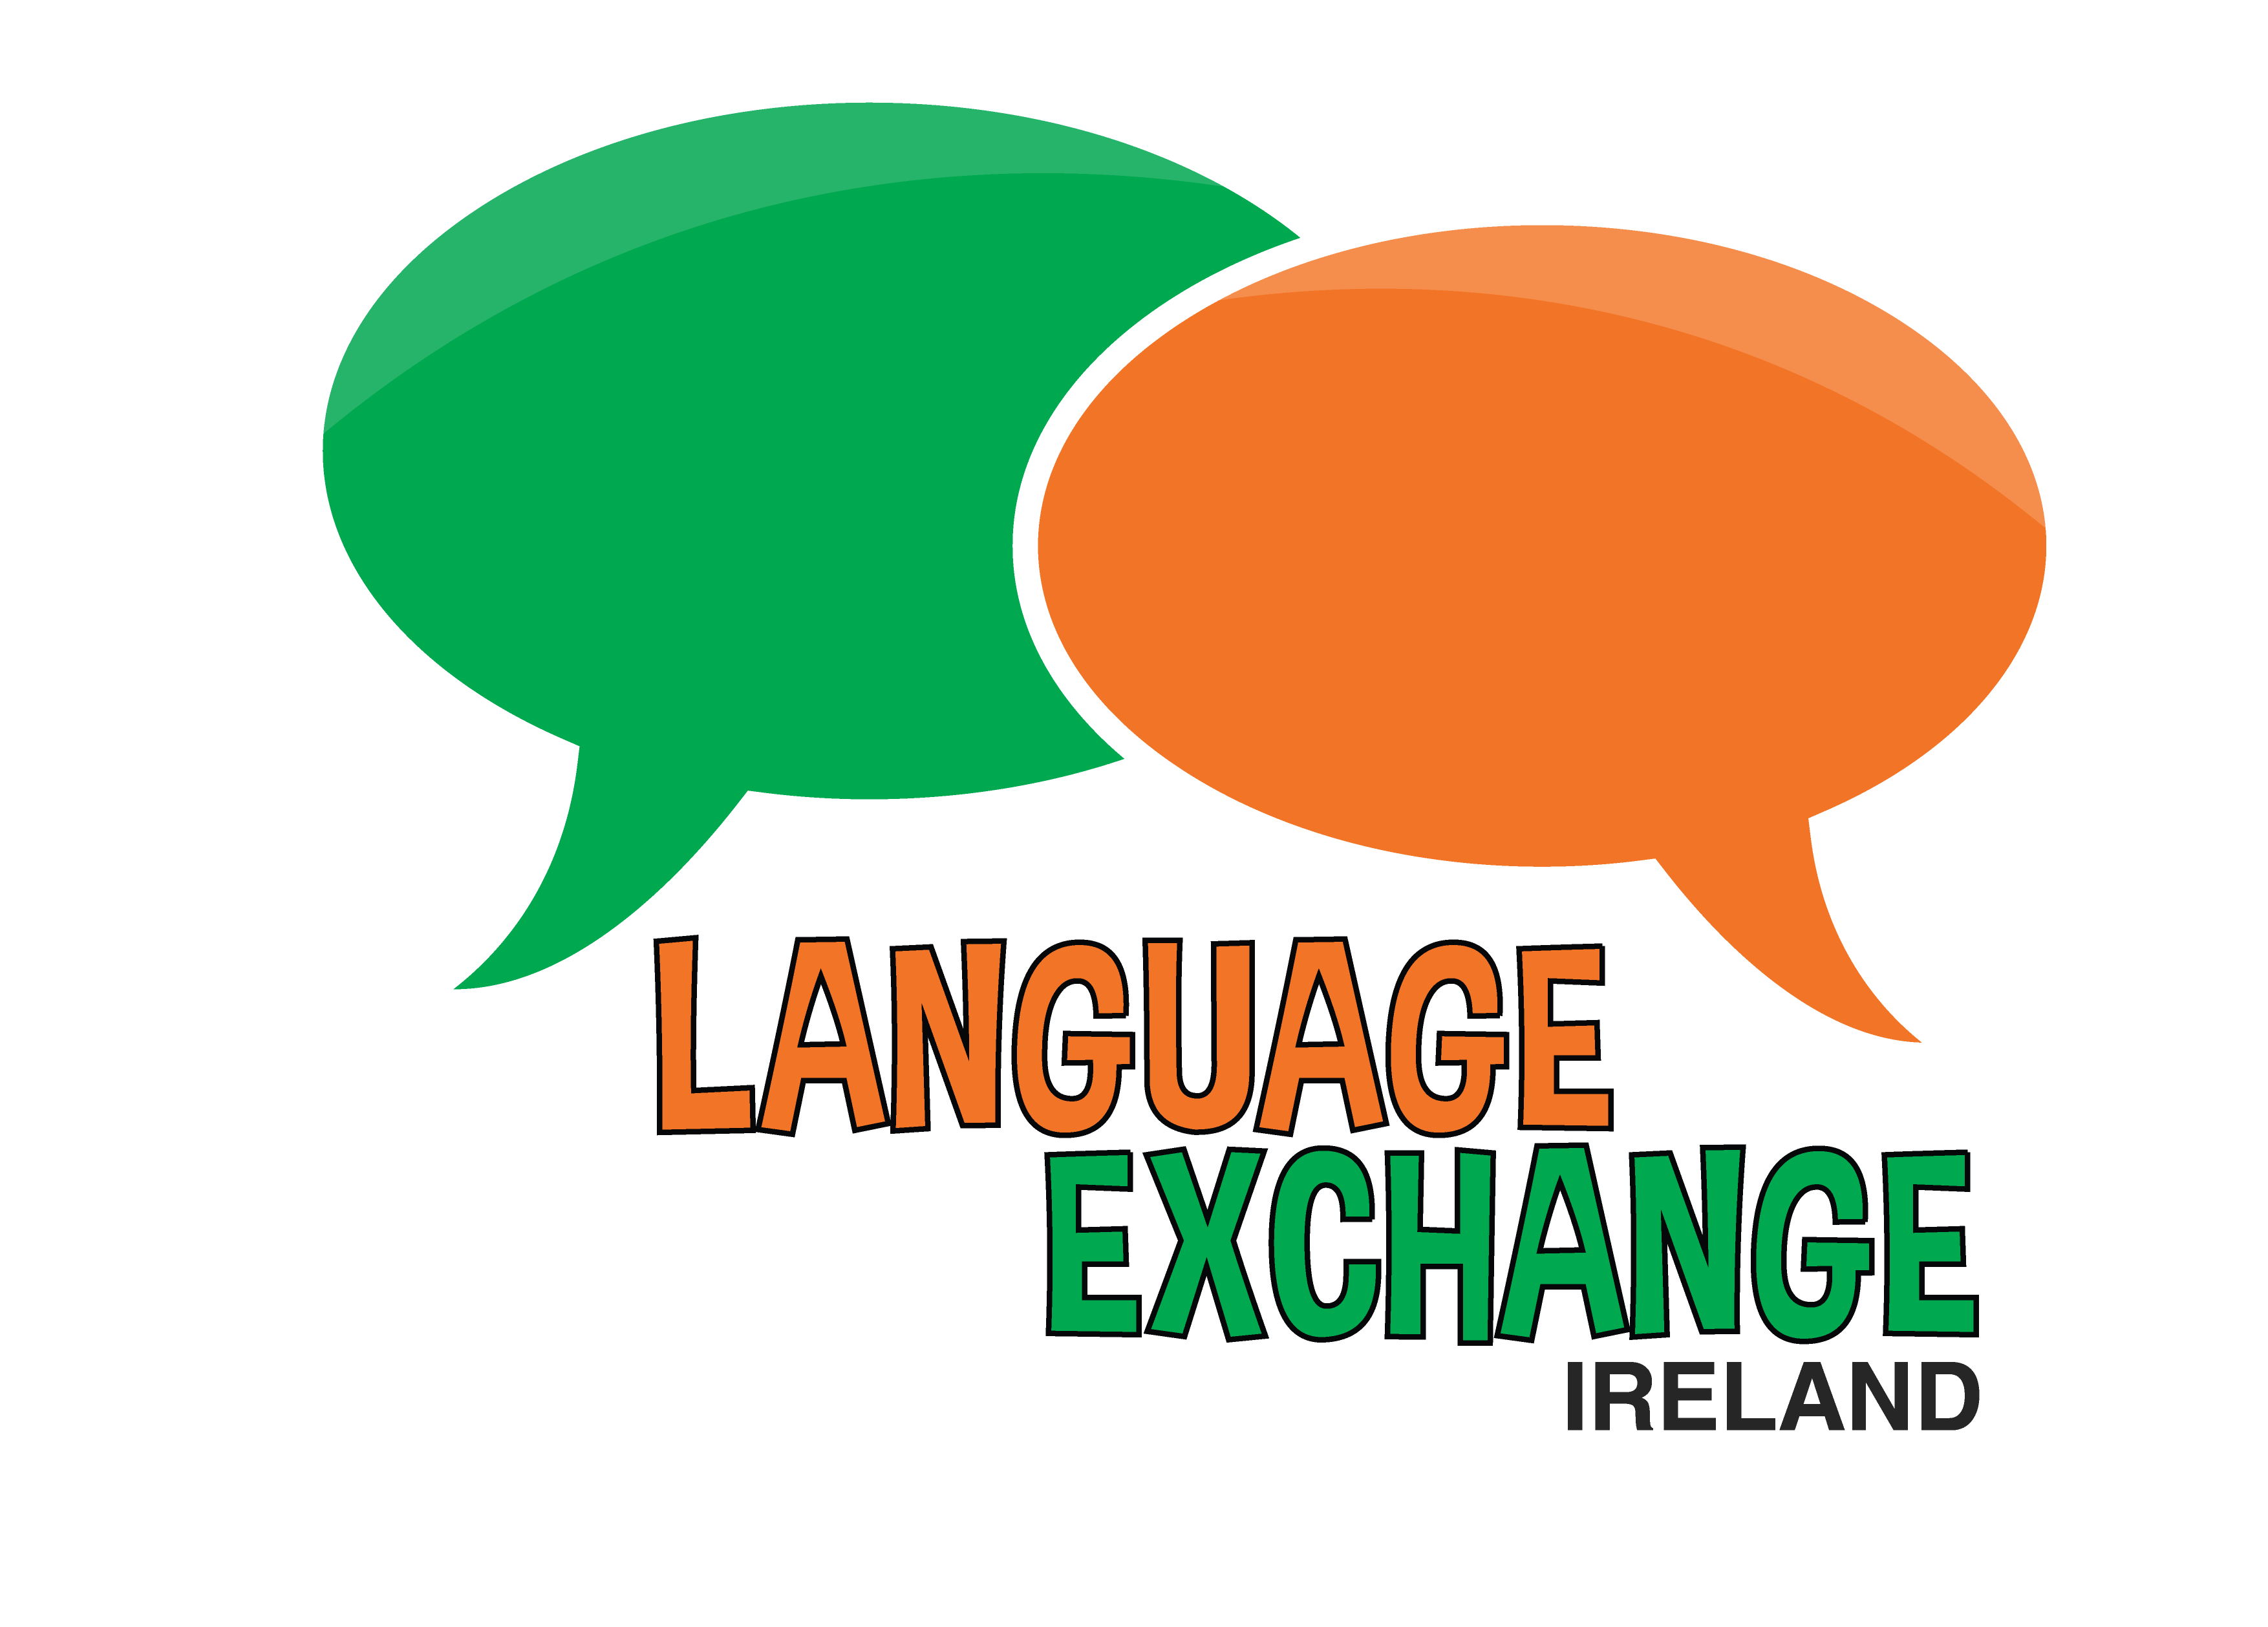 Worry clipart foreign language. Home exchange ireland